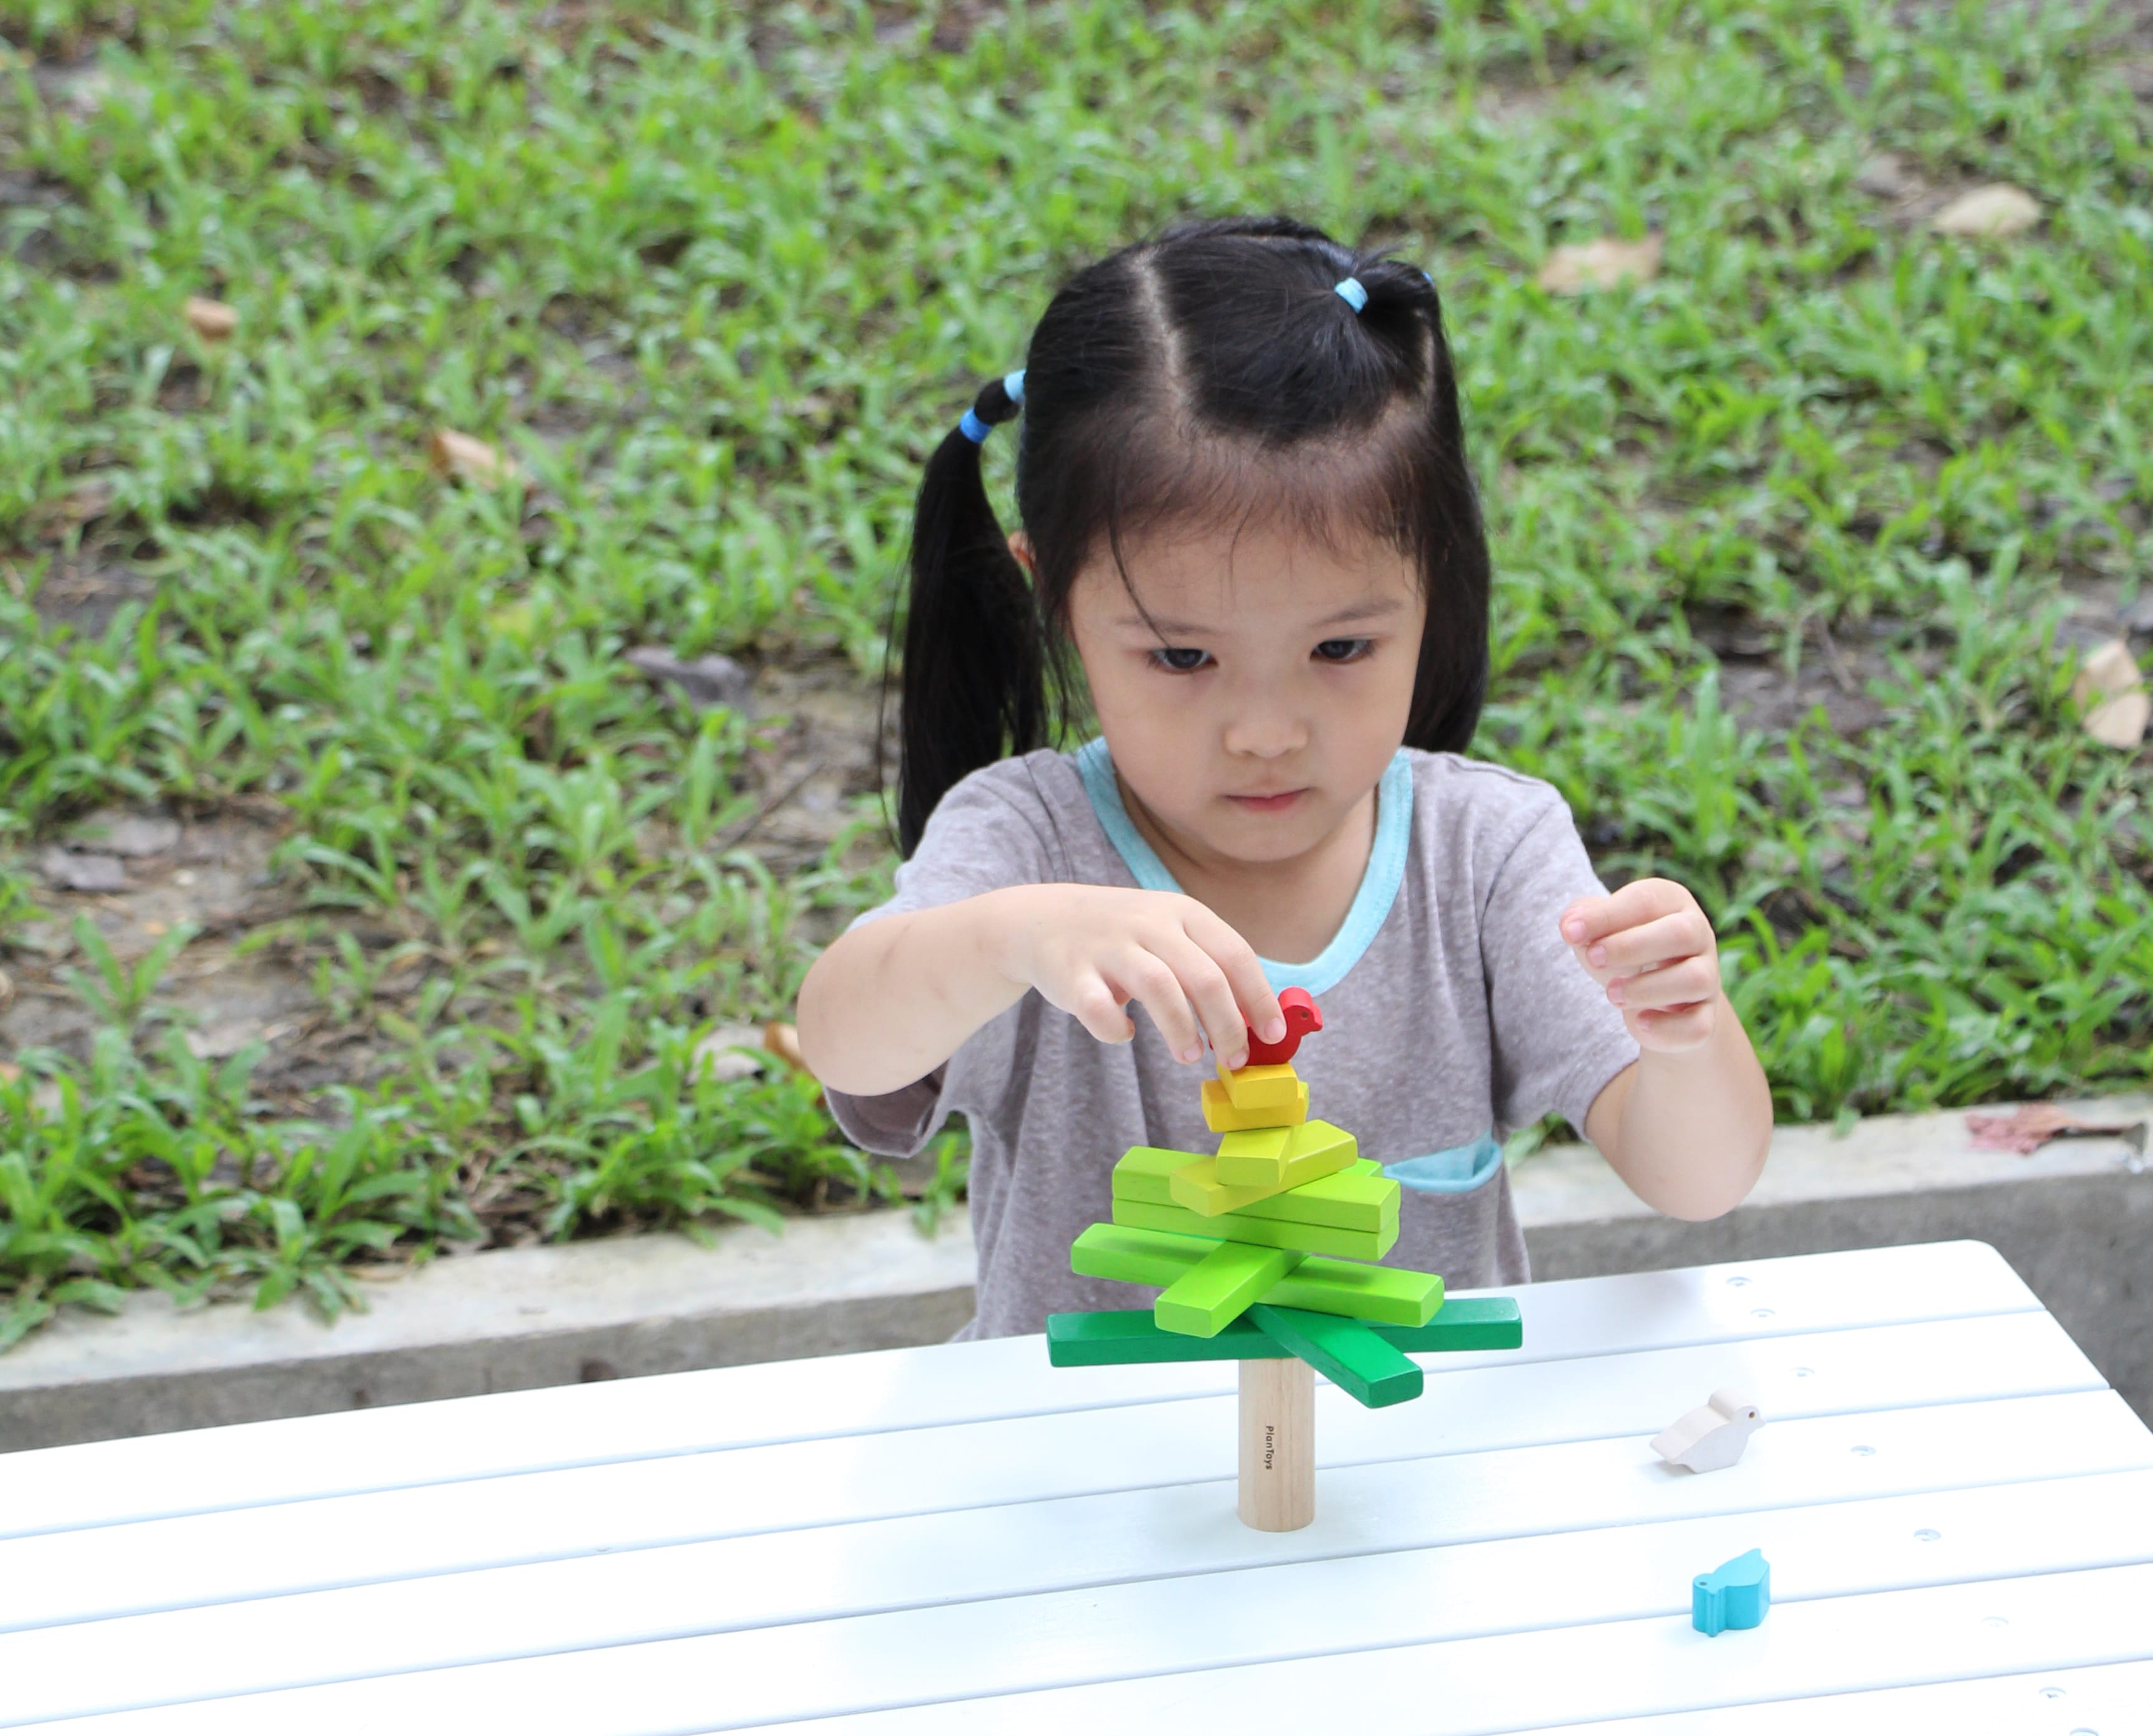 5140_PlanToys_BALANCING_TREE_Game_and_Puzzles_Fine_Motor_Social_Concentration_Coordination_3yrs_Wooden_toys_Education_toys_Safety_Toys_Non-toxic_6.jpg